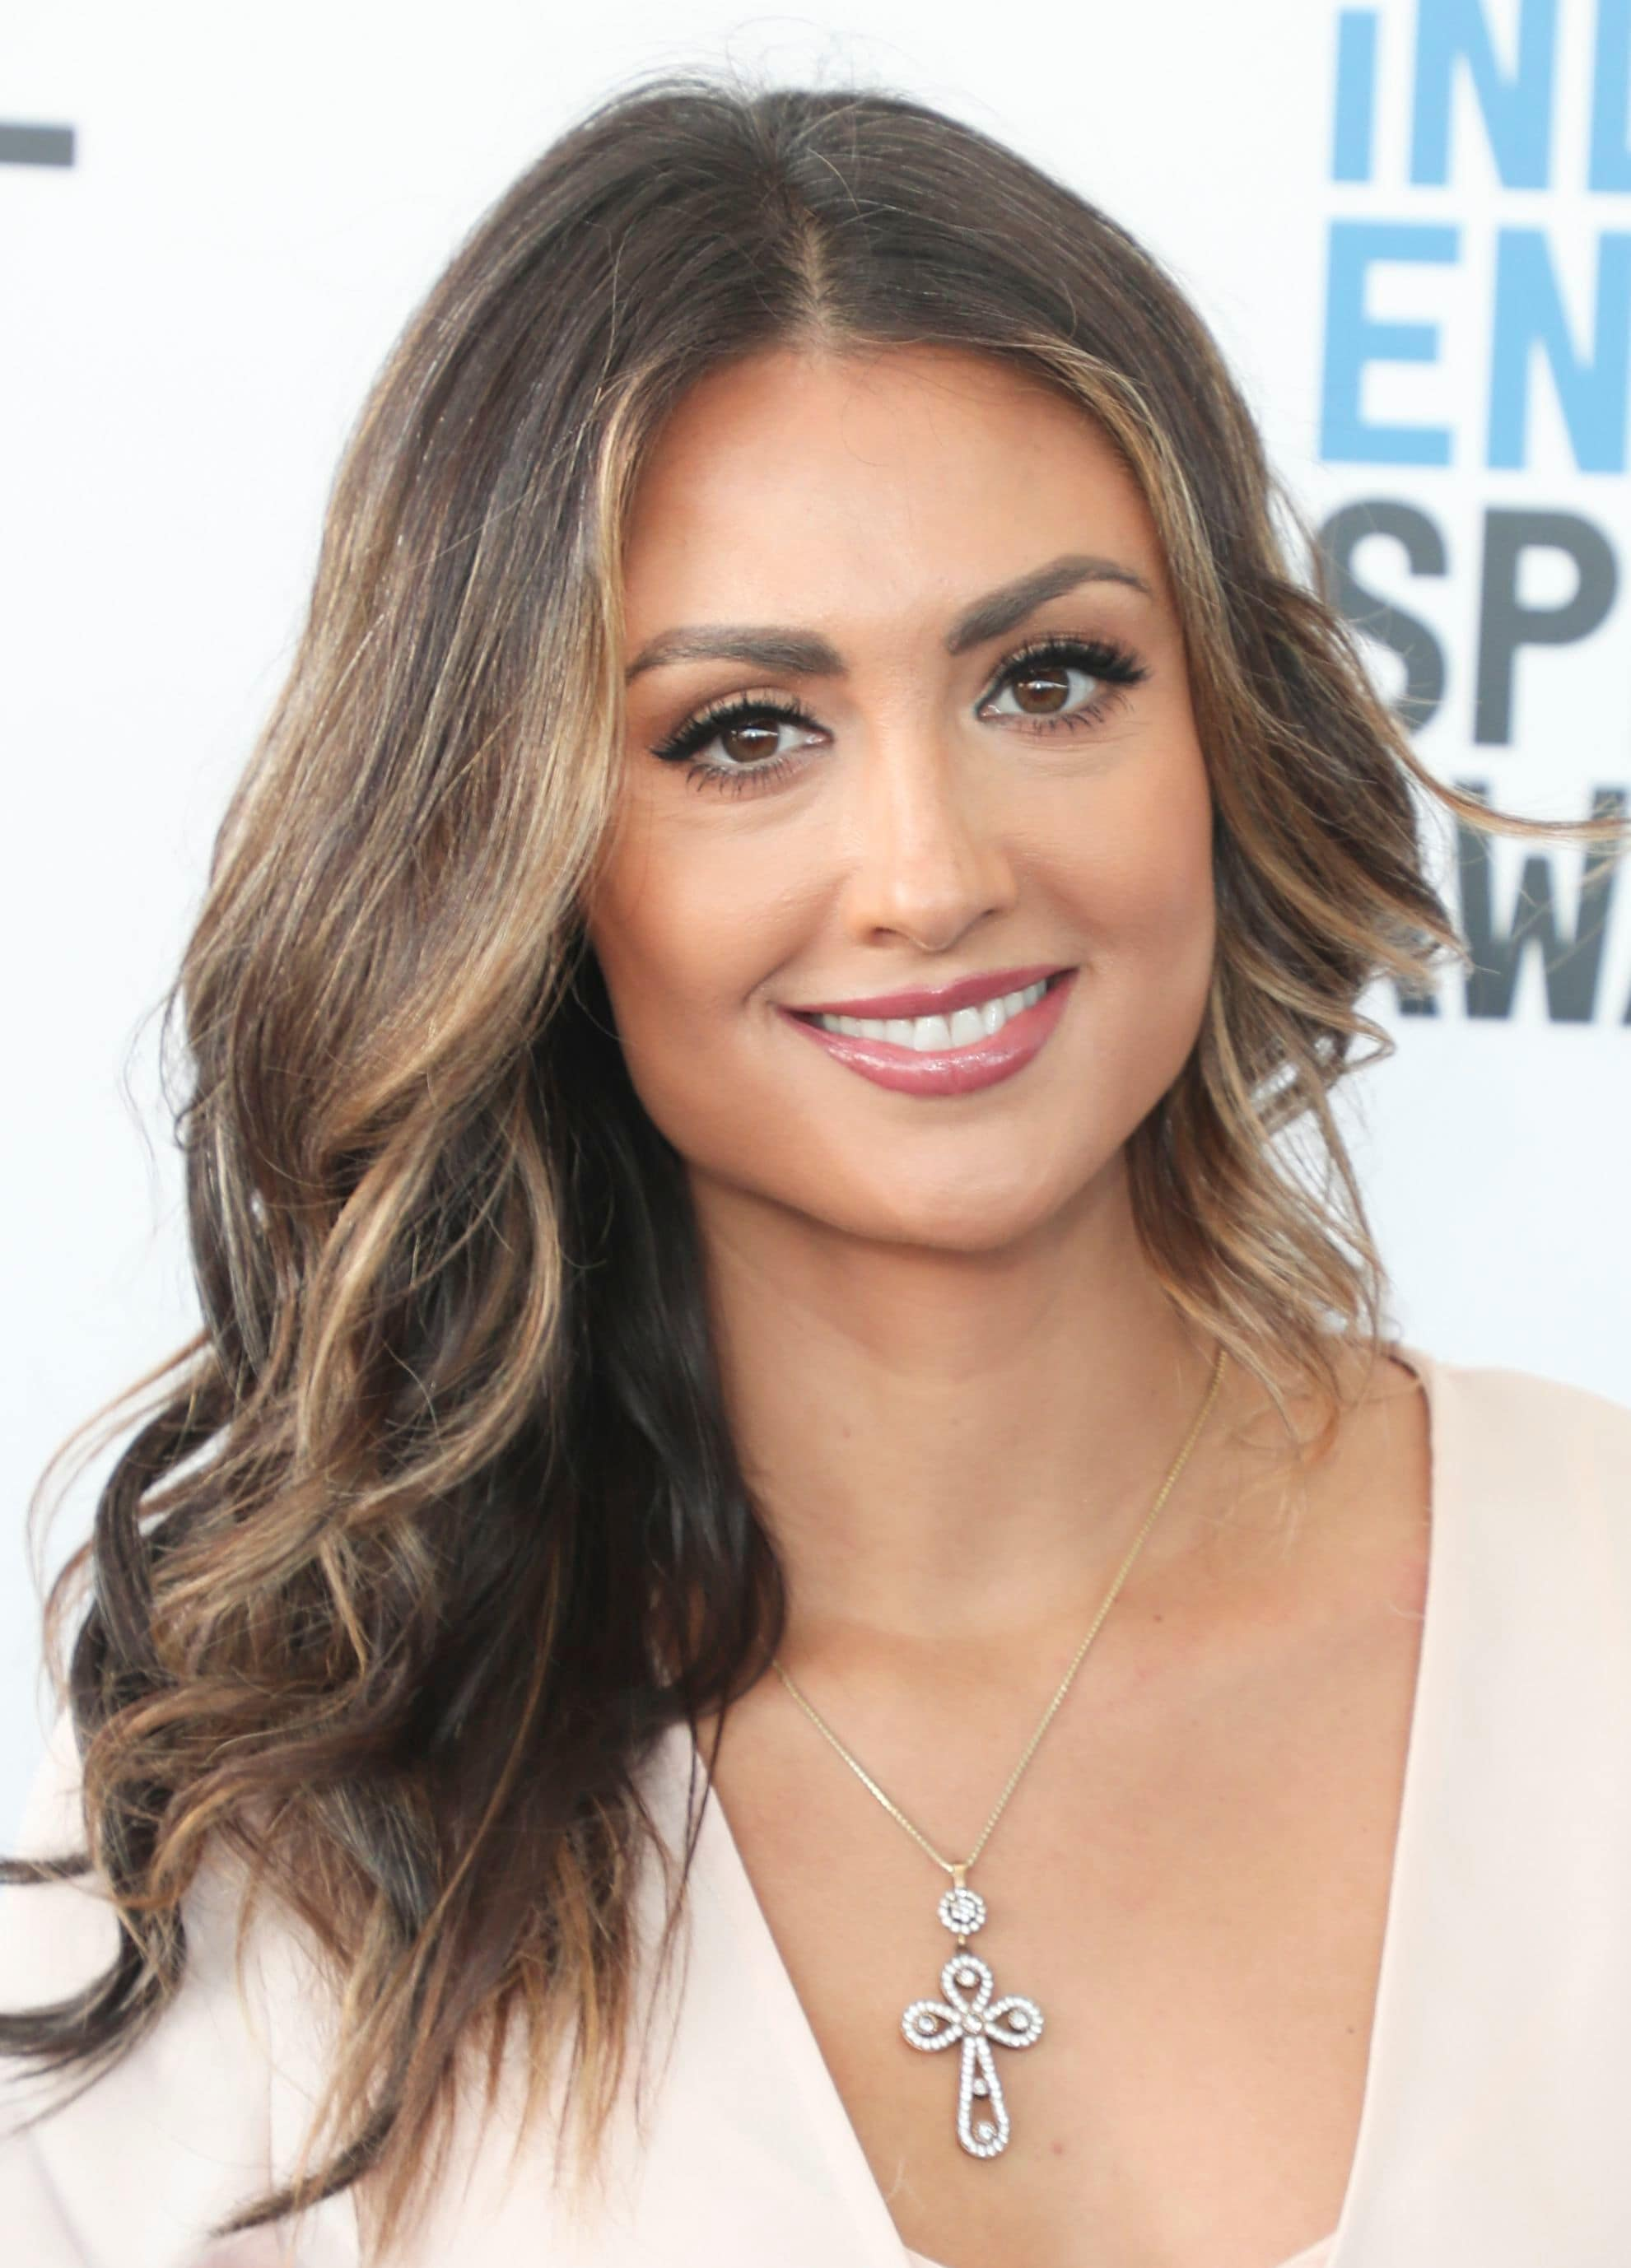 Katie Cleary with long brown wavy hair